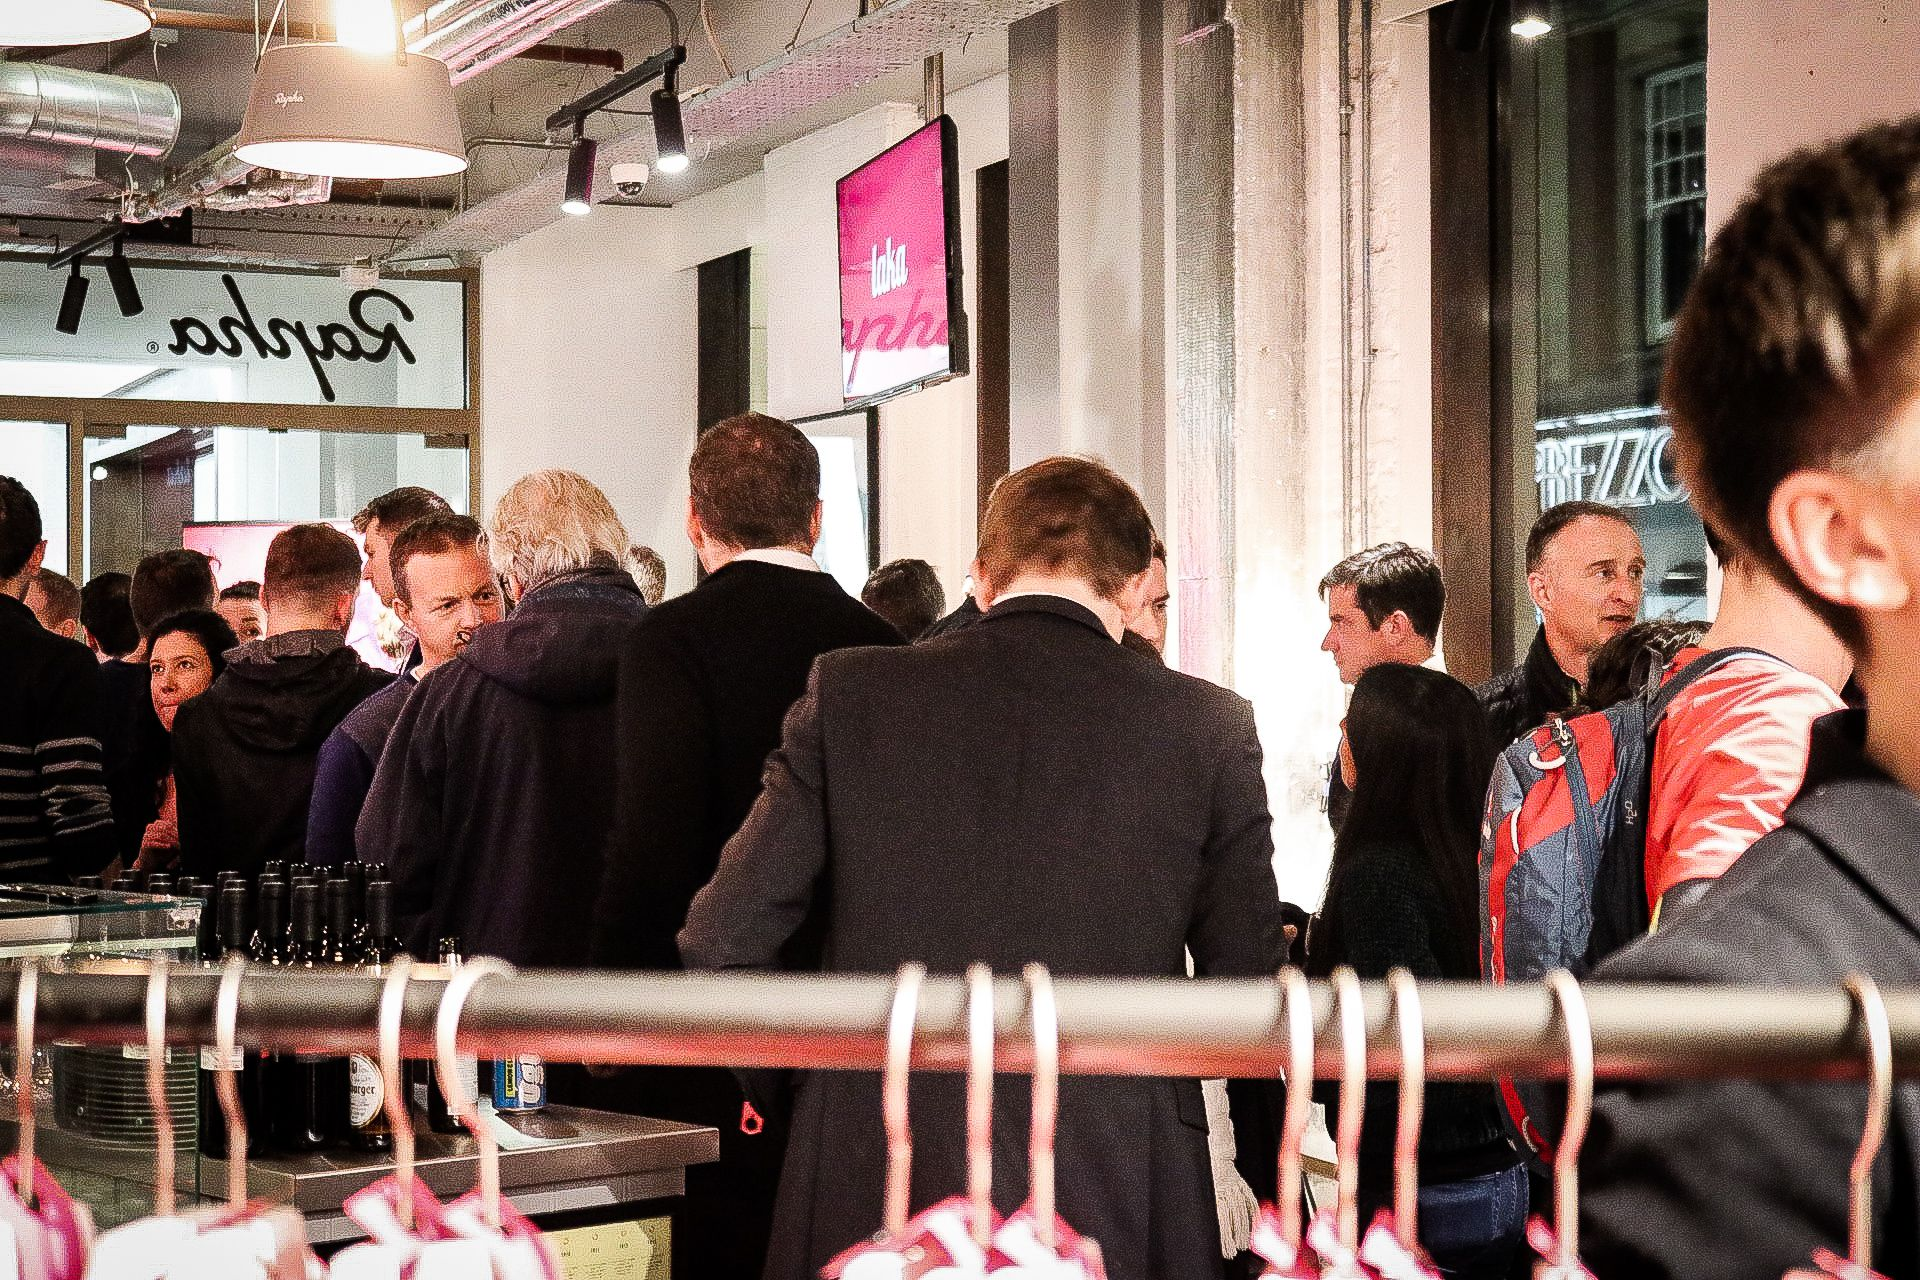 The Laka Team celebrates its 1st launch anniversary at Rapha Soho.